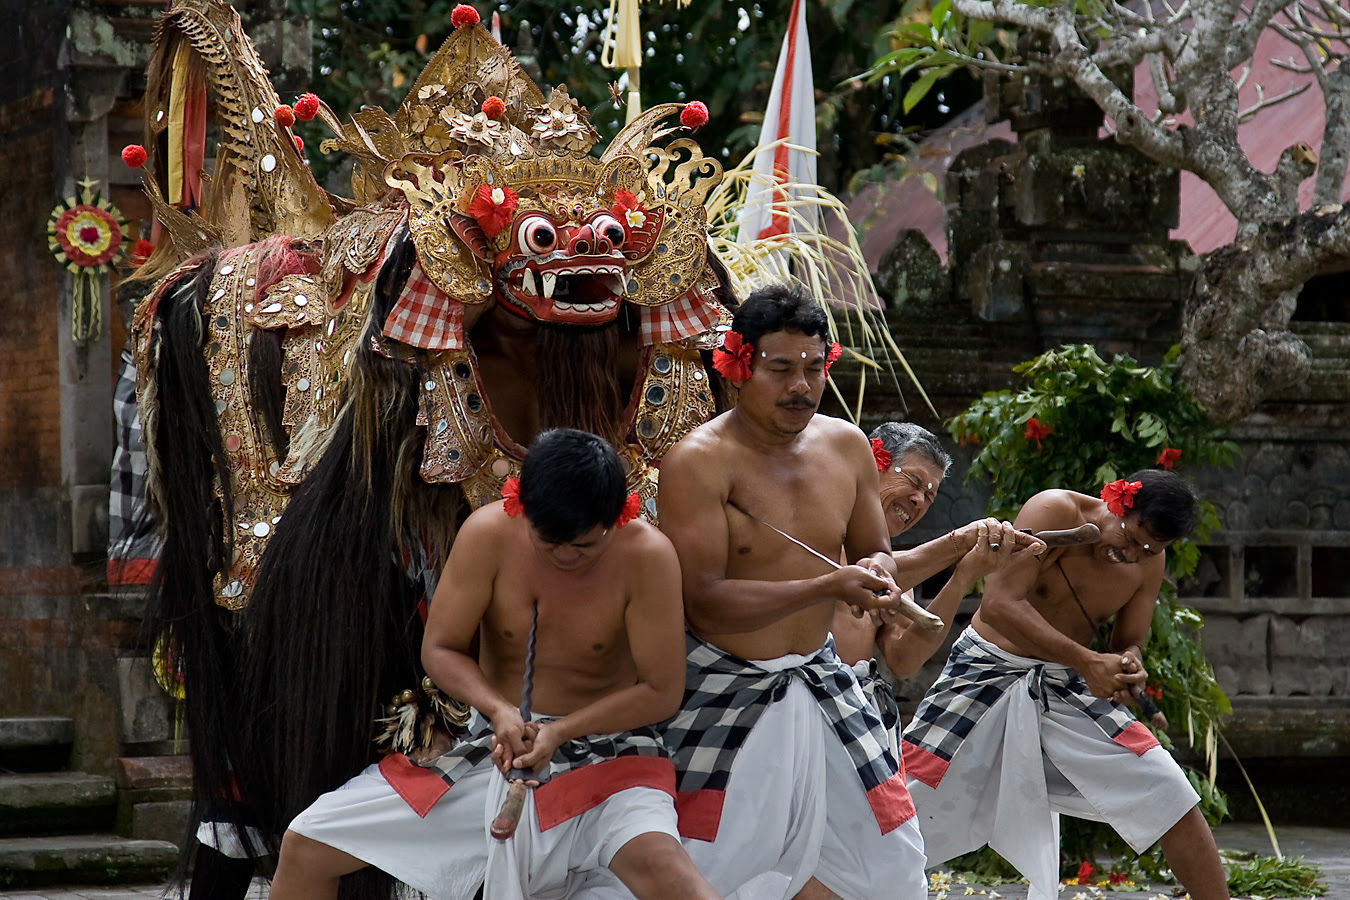 Location Map of Bali Barong Dance at Batubulan Ubud,Bali Barong Dance Batubulan Ubud Location Map,Balinese Barong Dance Batubulan Ubud Accommodation Destinations Attractions Hotels Map Photo Pictures,barong dance batubulan performance story characters entrance fee reviews